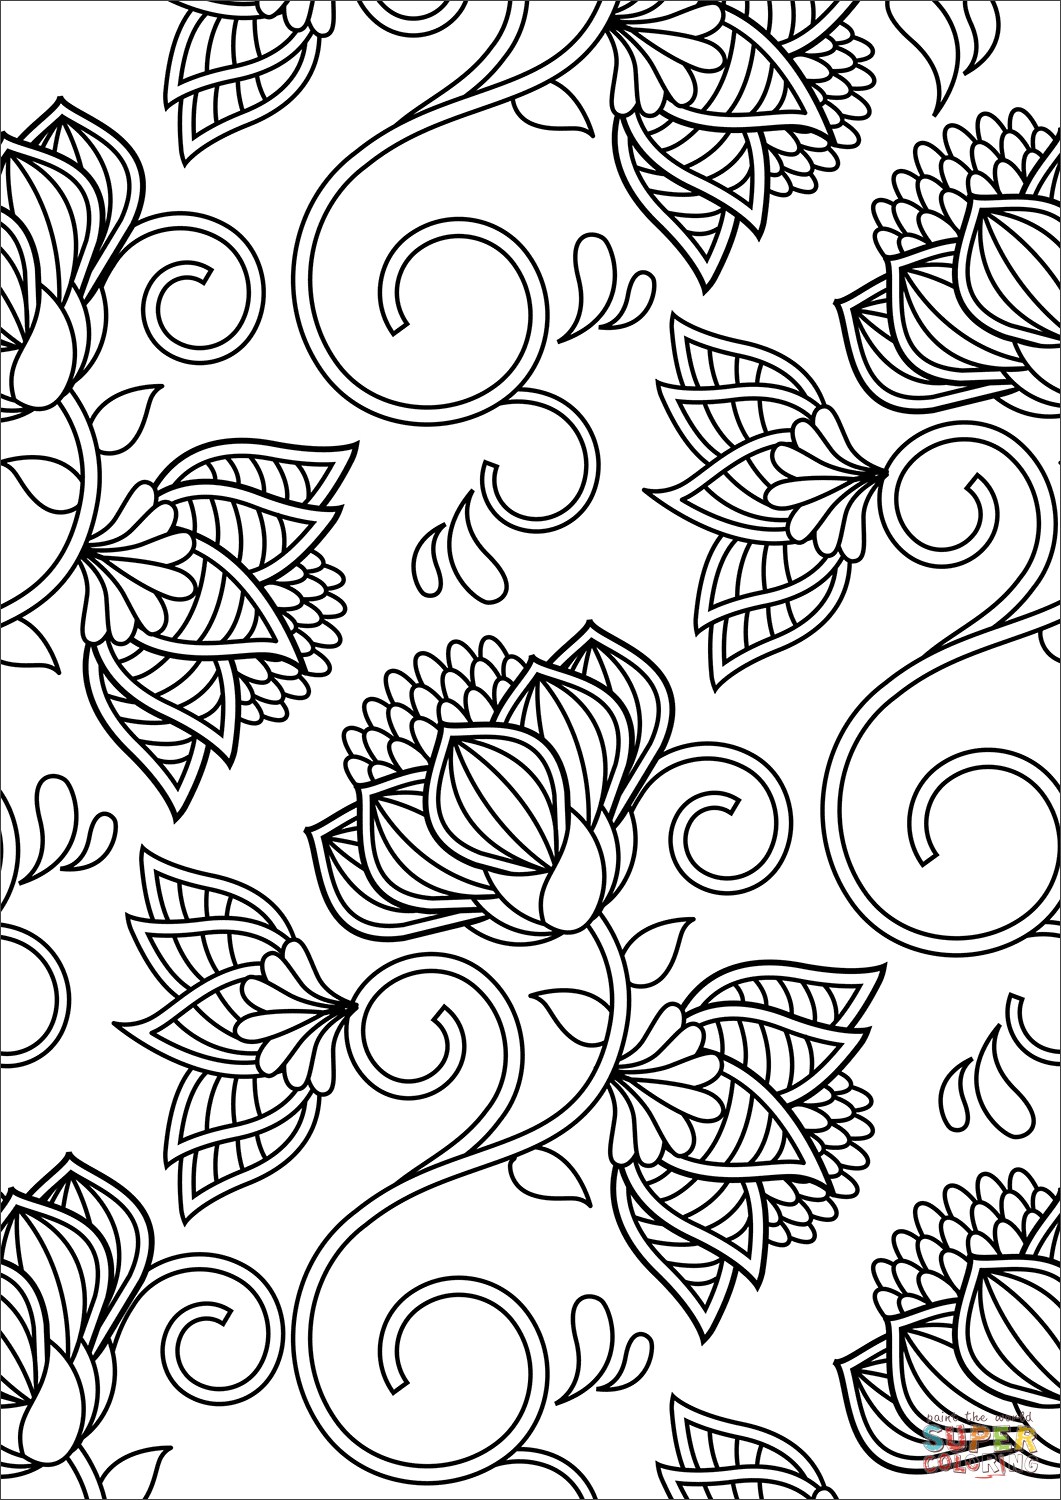 patterned colouring pages pattern thelinoprinter colouring patterned pages